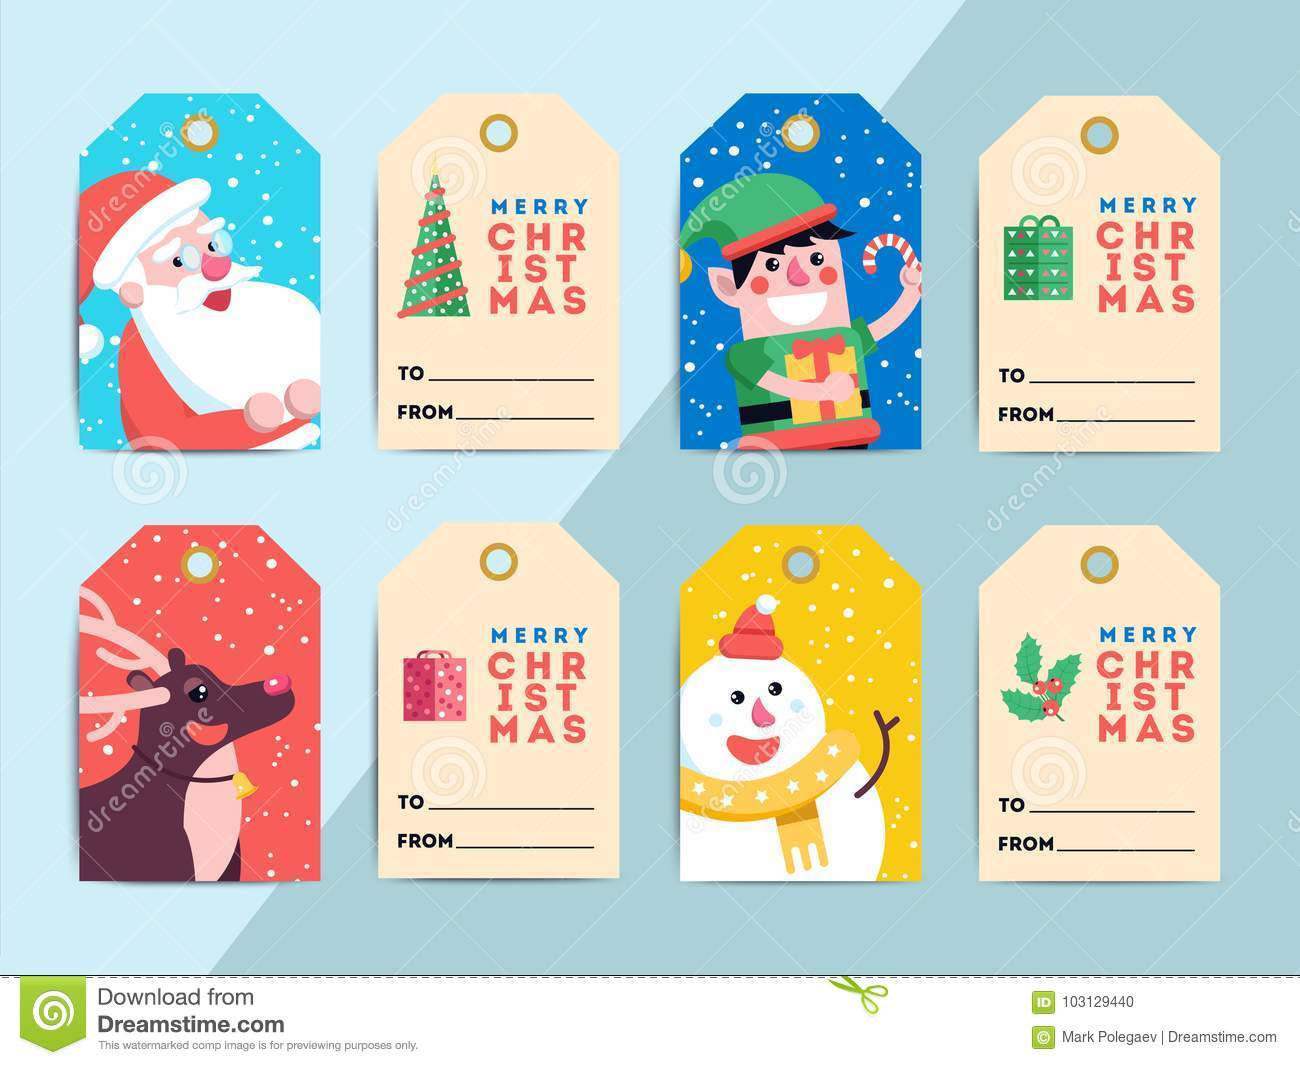 photograph relating to Christmas Tags Printable titled Xmas Reward Tags Template Fixed. Vector Printable Christmas Box